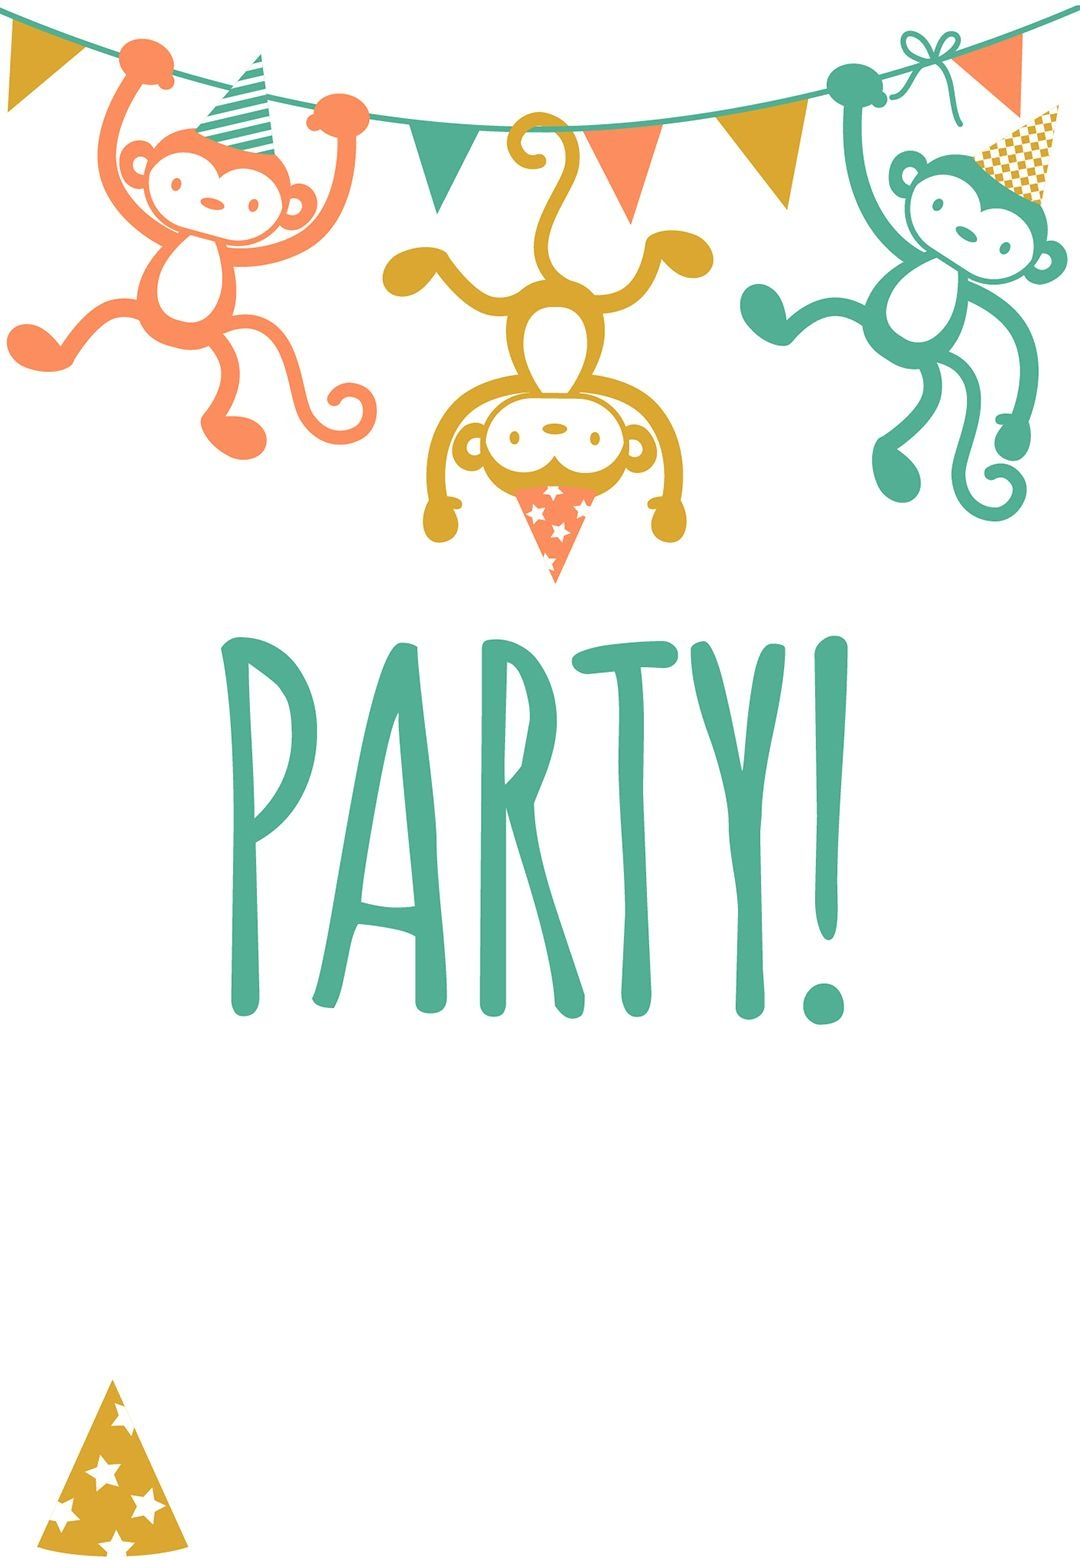 Free Printable Childrens Party Invitation   Free Printables   Free - Free Printable Birthday Invitations For Kids